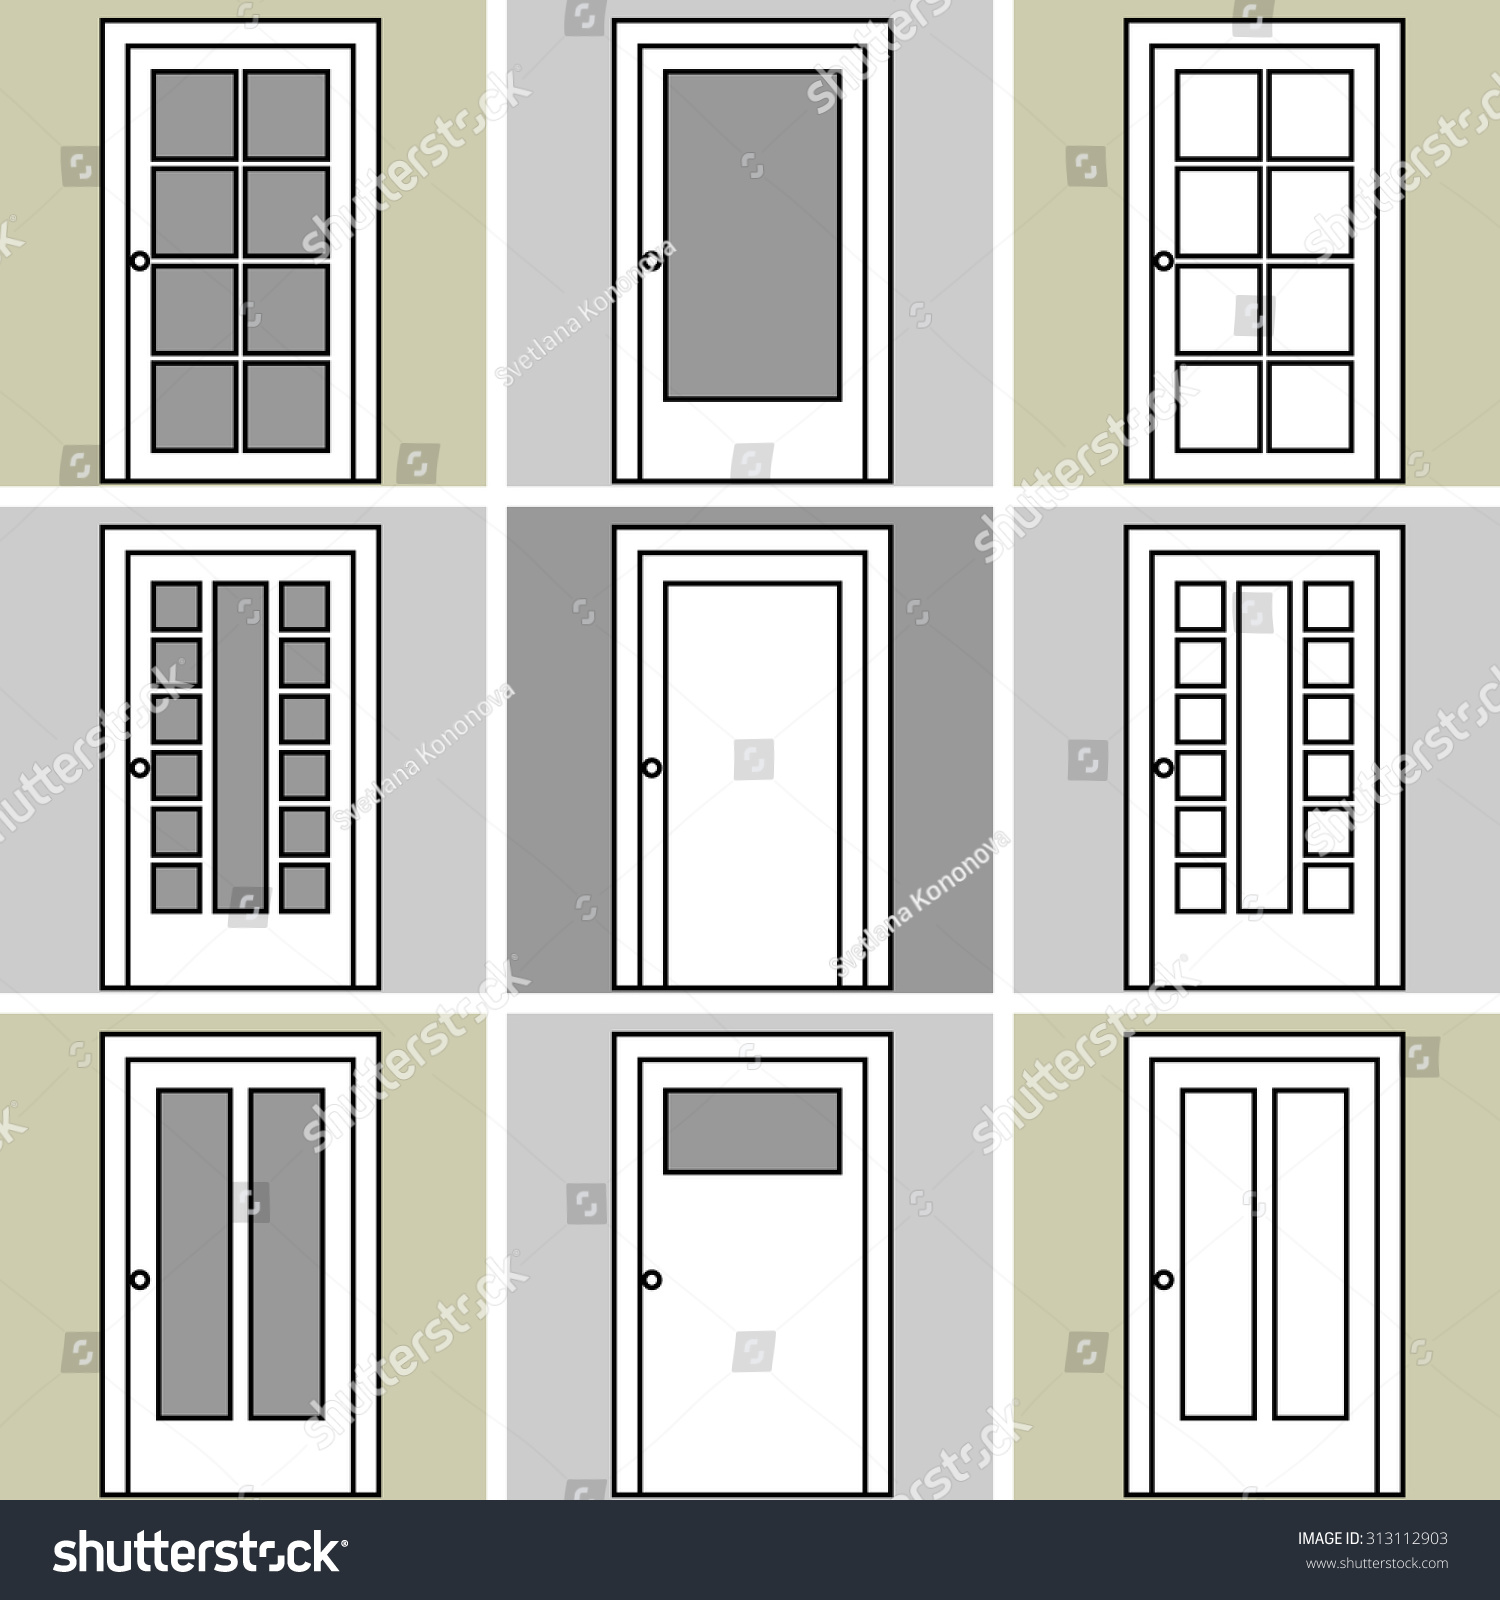 Trocal 76 entry door tiltturnwindows ca - Set Of 9 Wooden Doors Drawings Architectural Collection Black And White